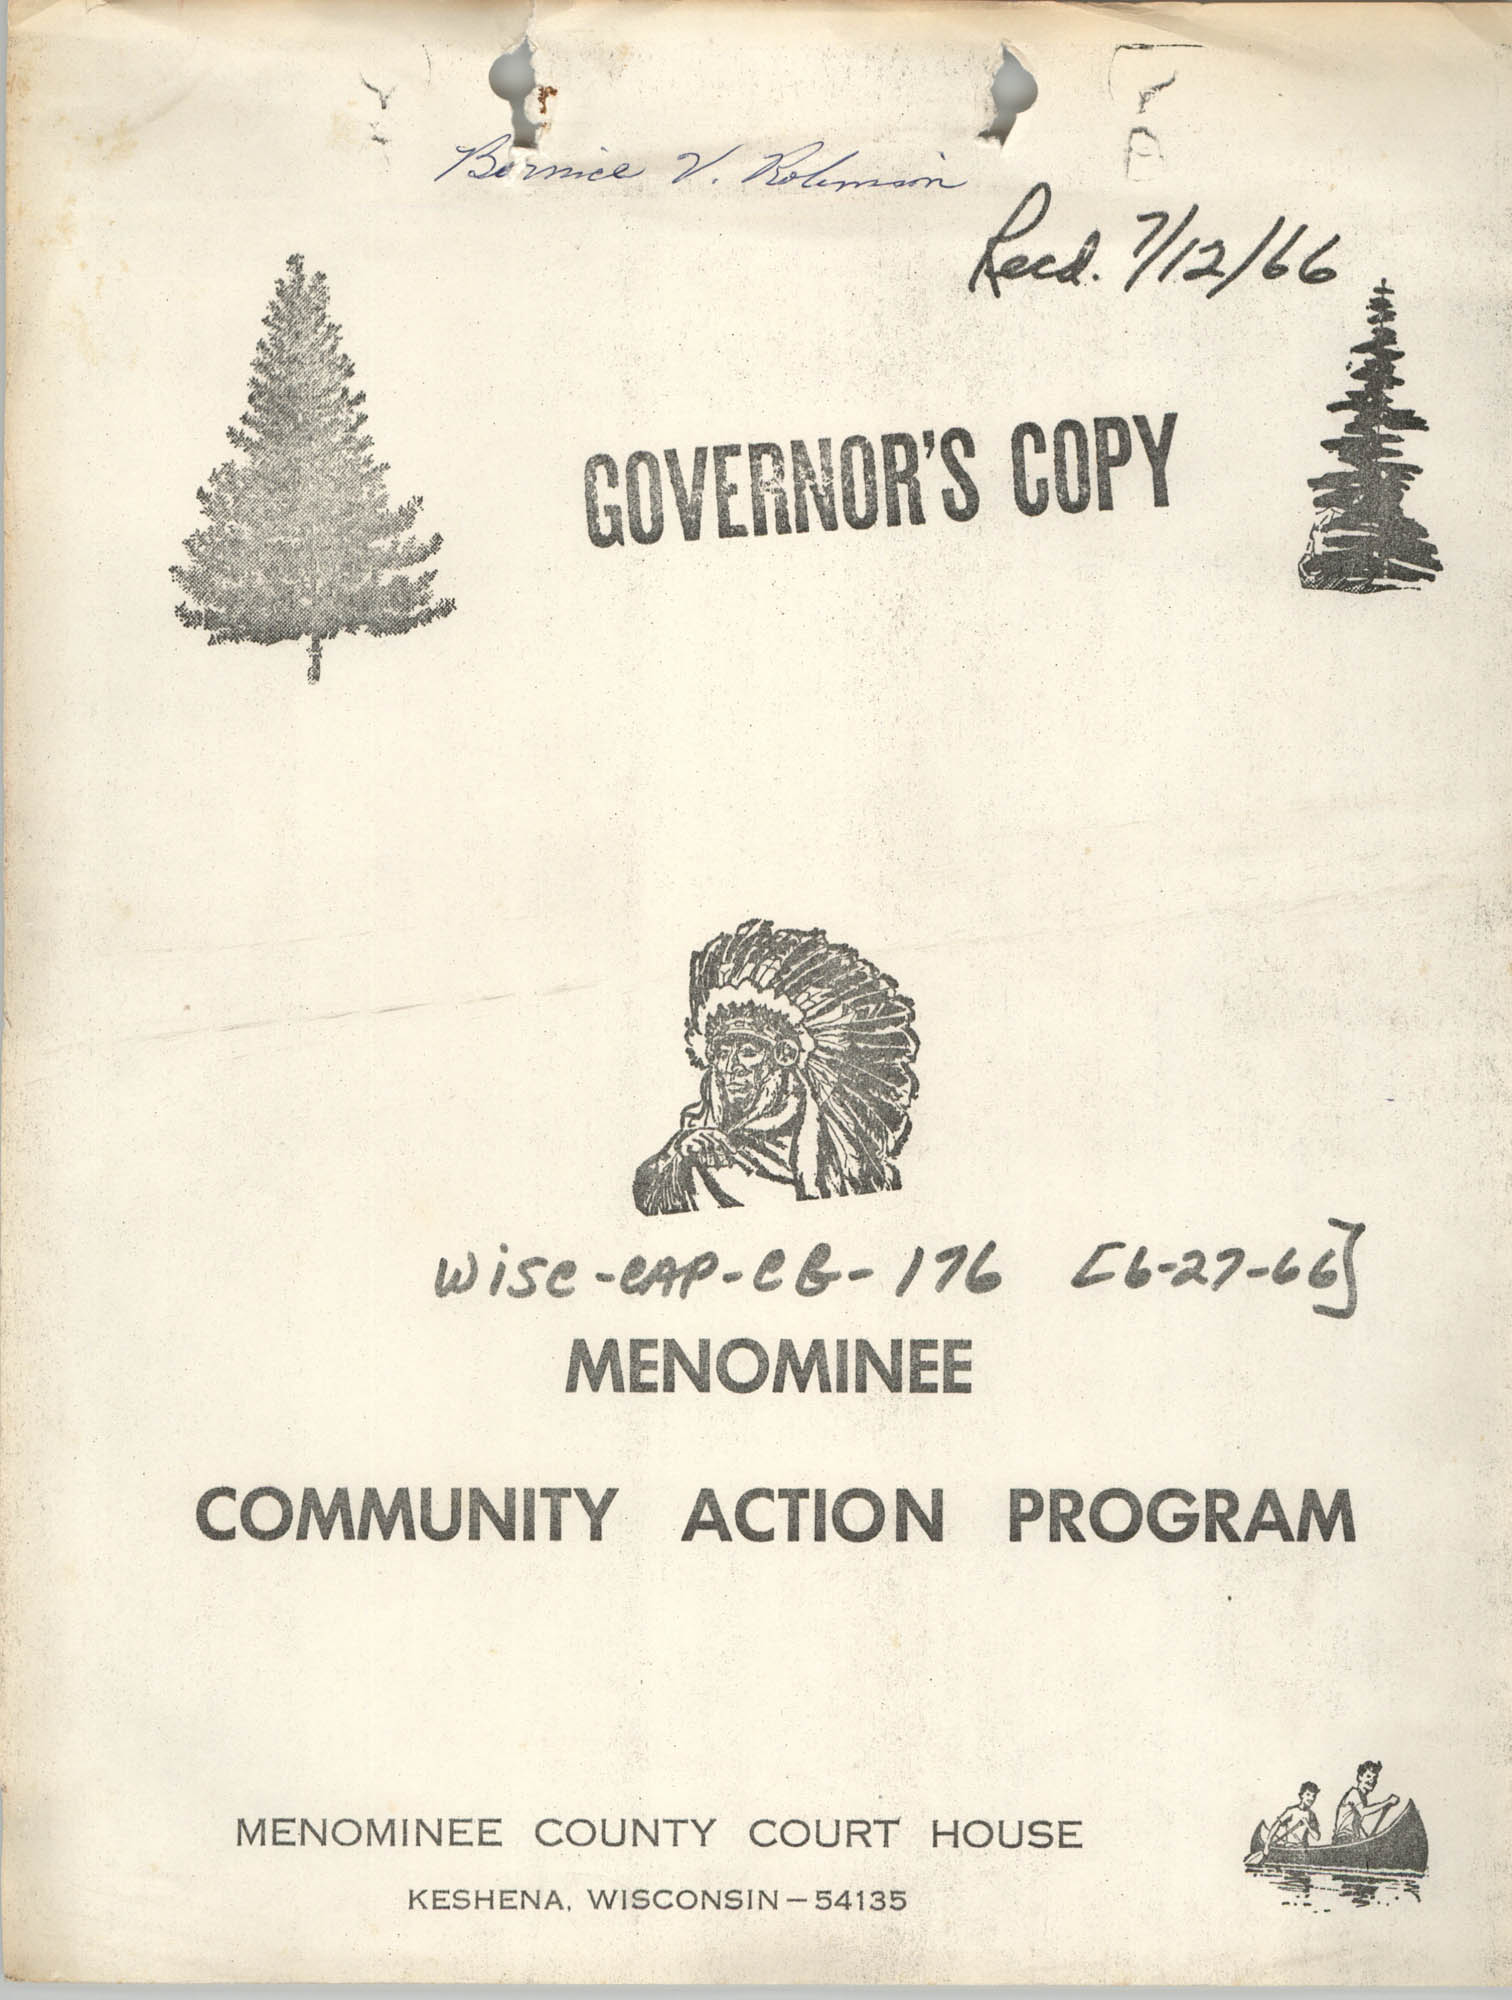 Menominee Community Action Program, Governor's Copy